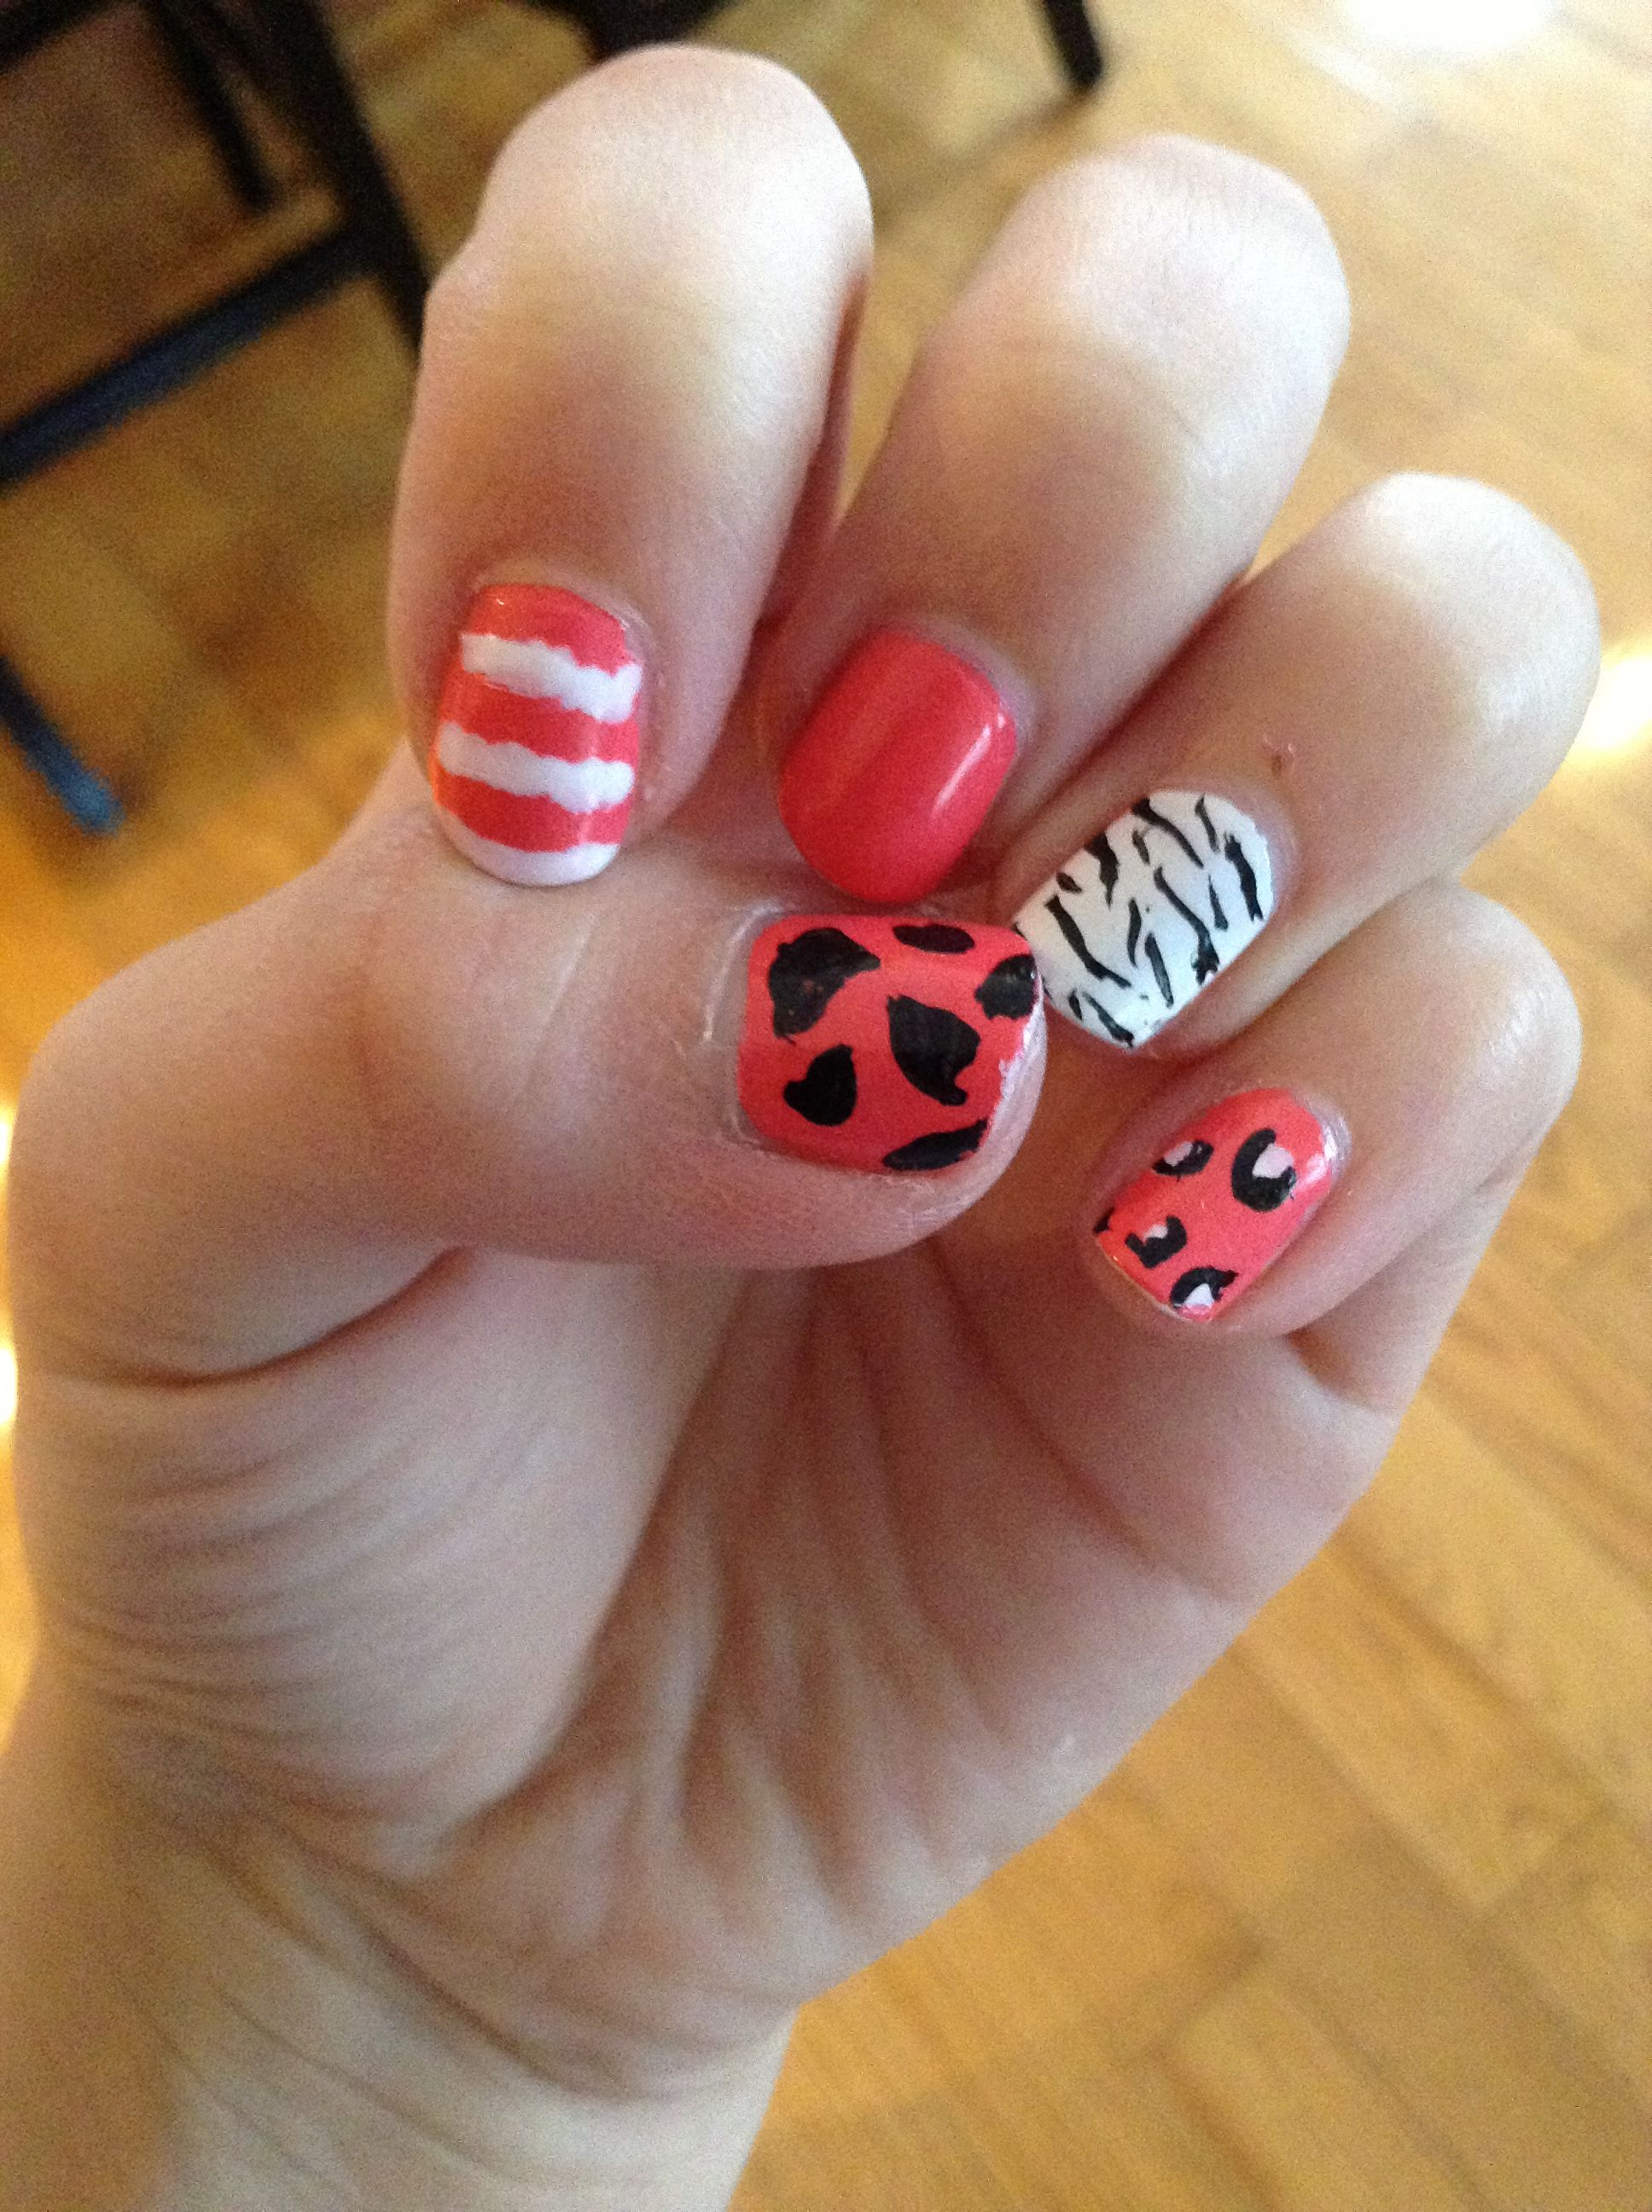 Just My 13 Yr Old Daughter Having Fun Freehandt Bad Nail